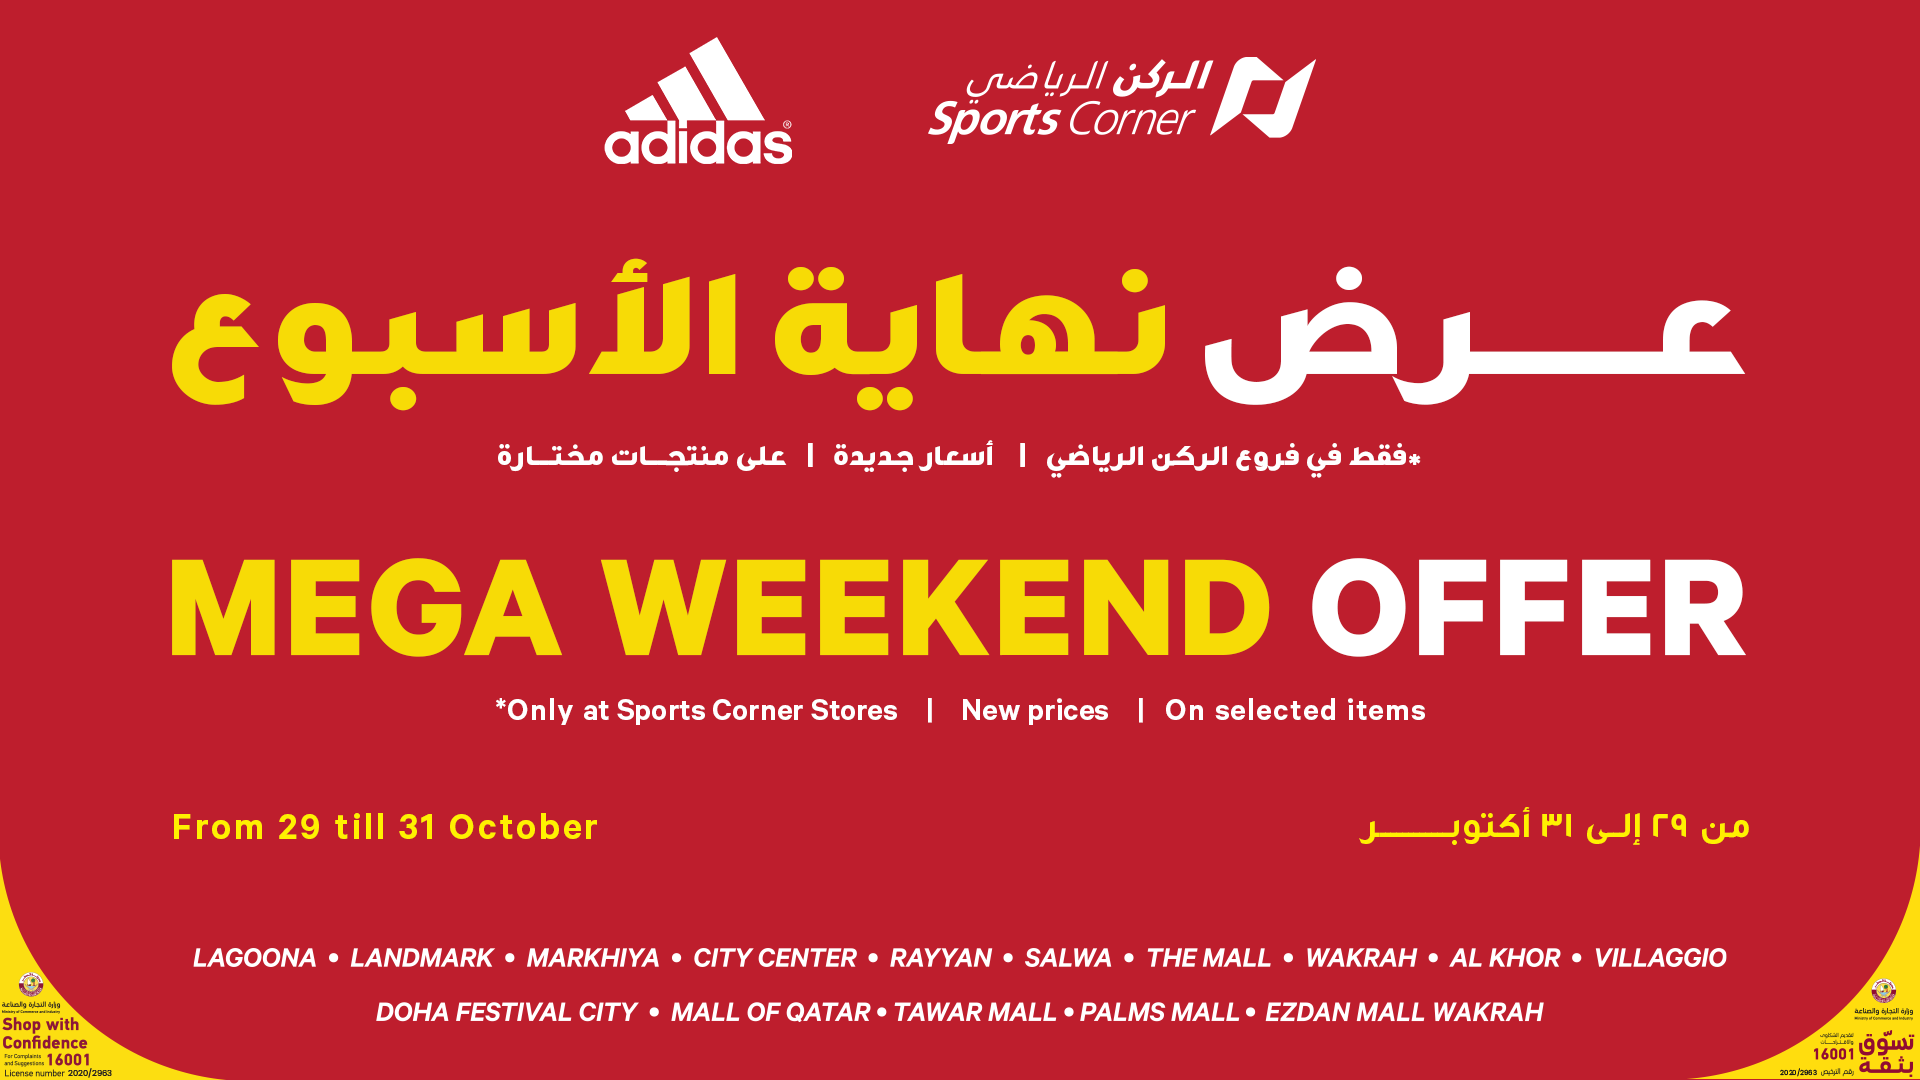 Mega Weekend Offer at Sports Corner and Adidas stores